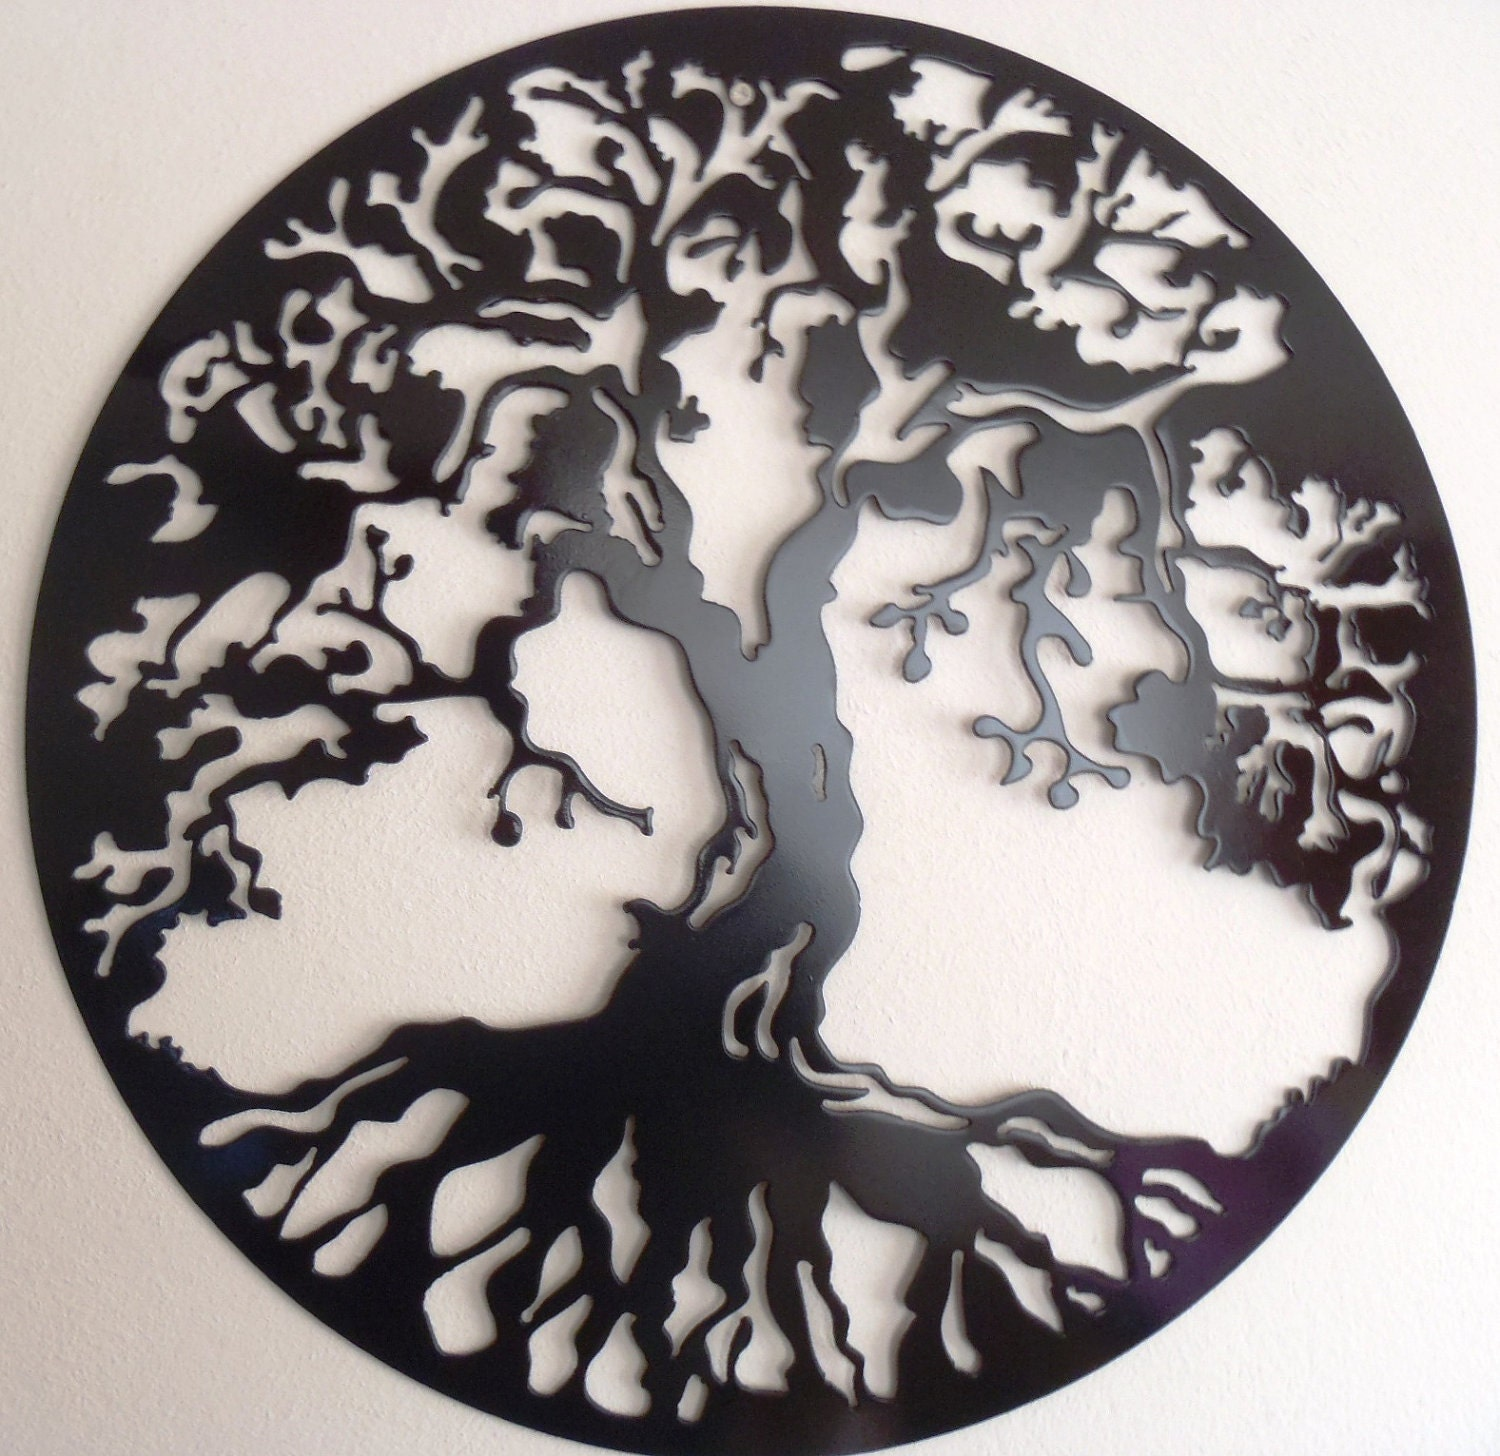 Tree Of Life 75 cm 29.5 Wall decor Metal Art BLACK